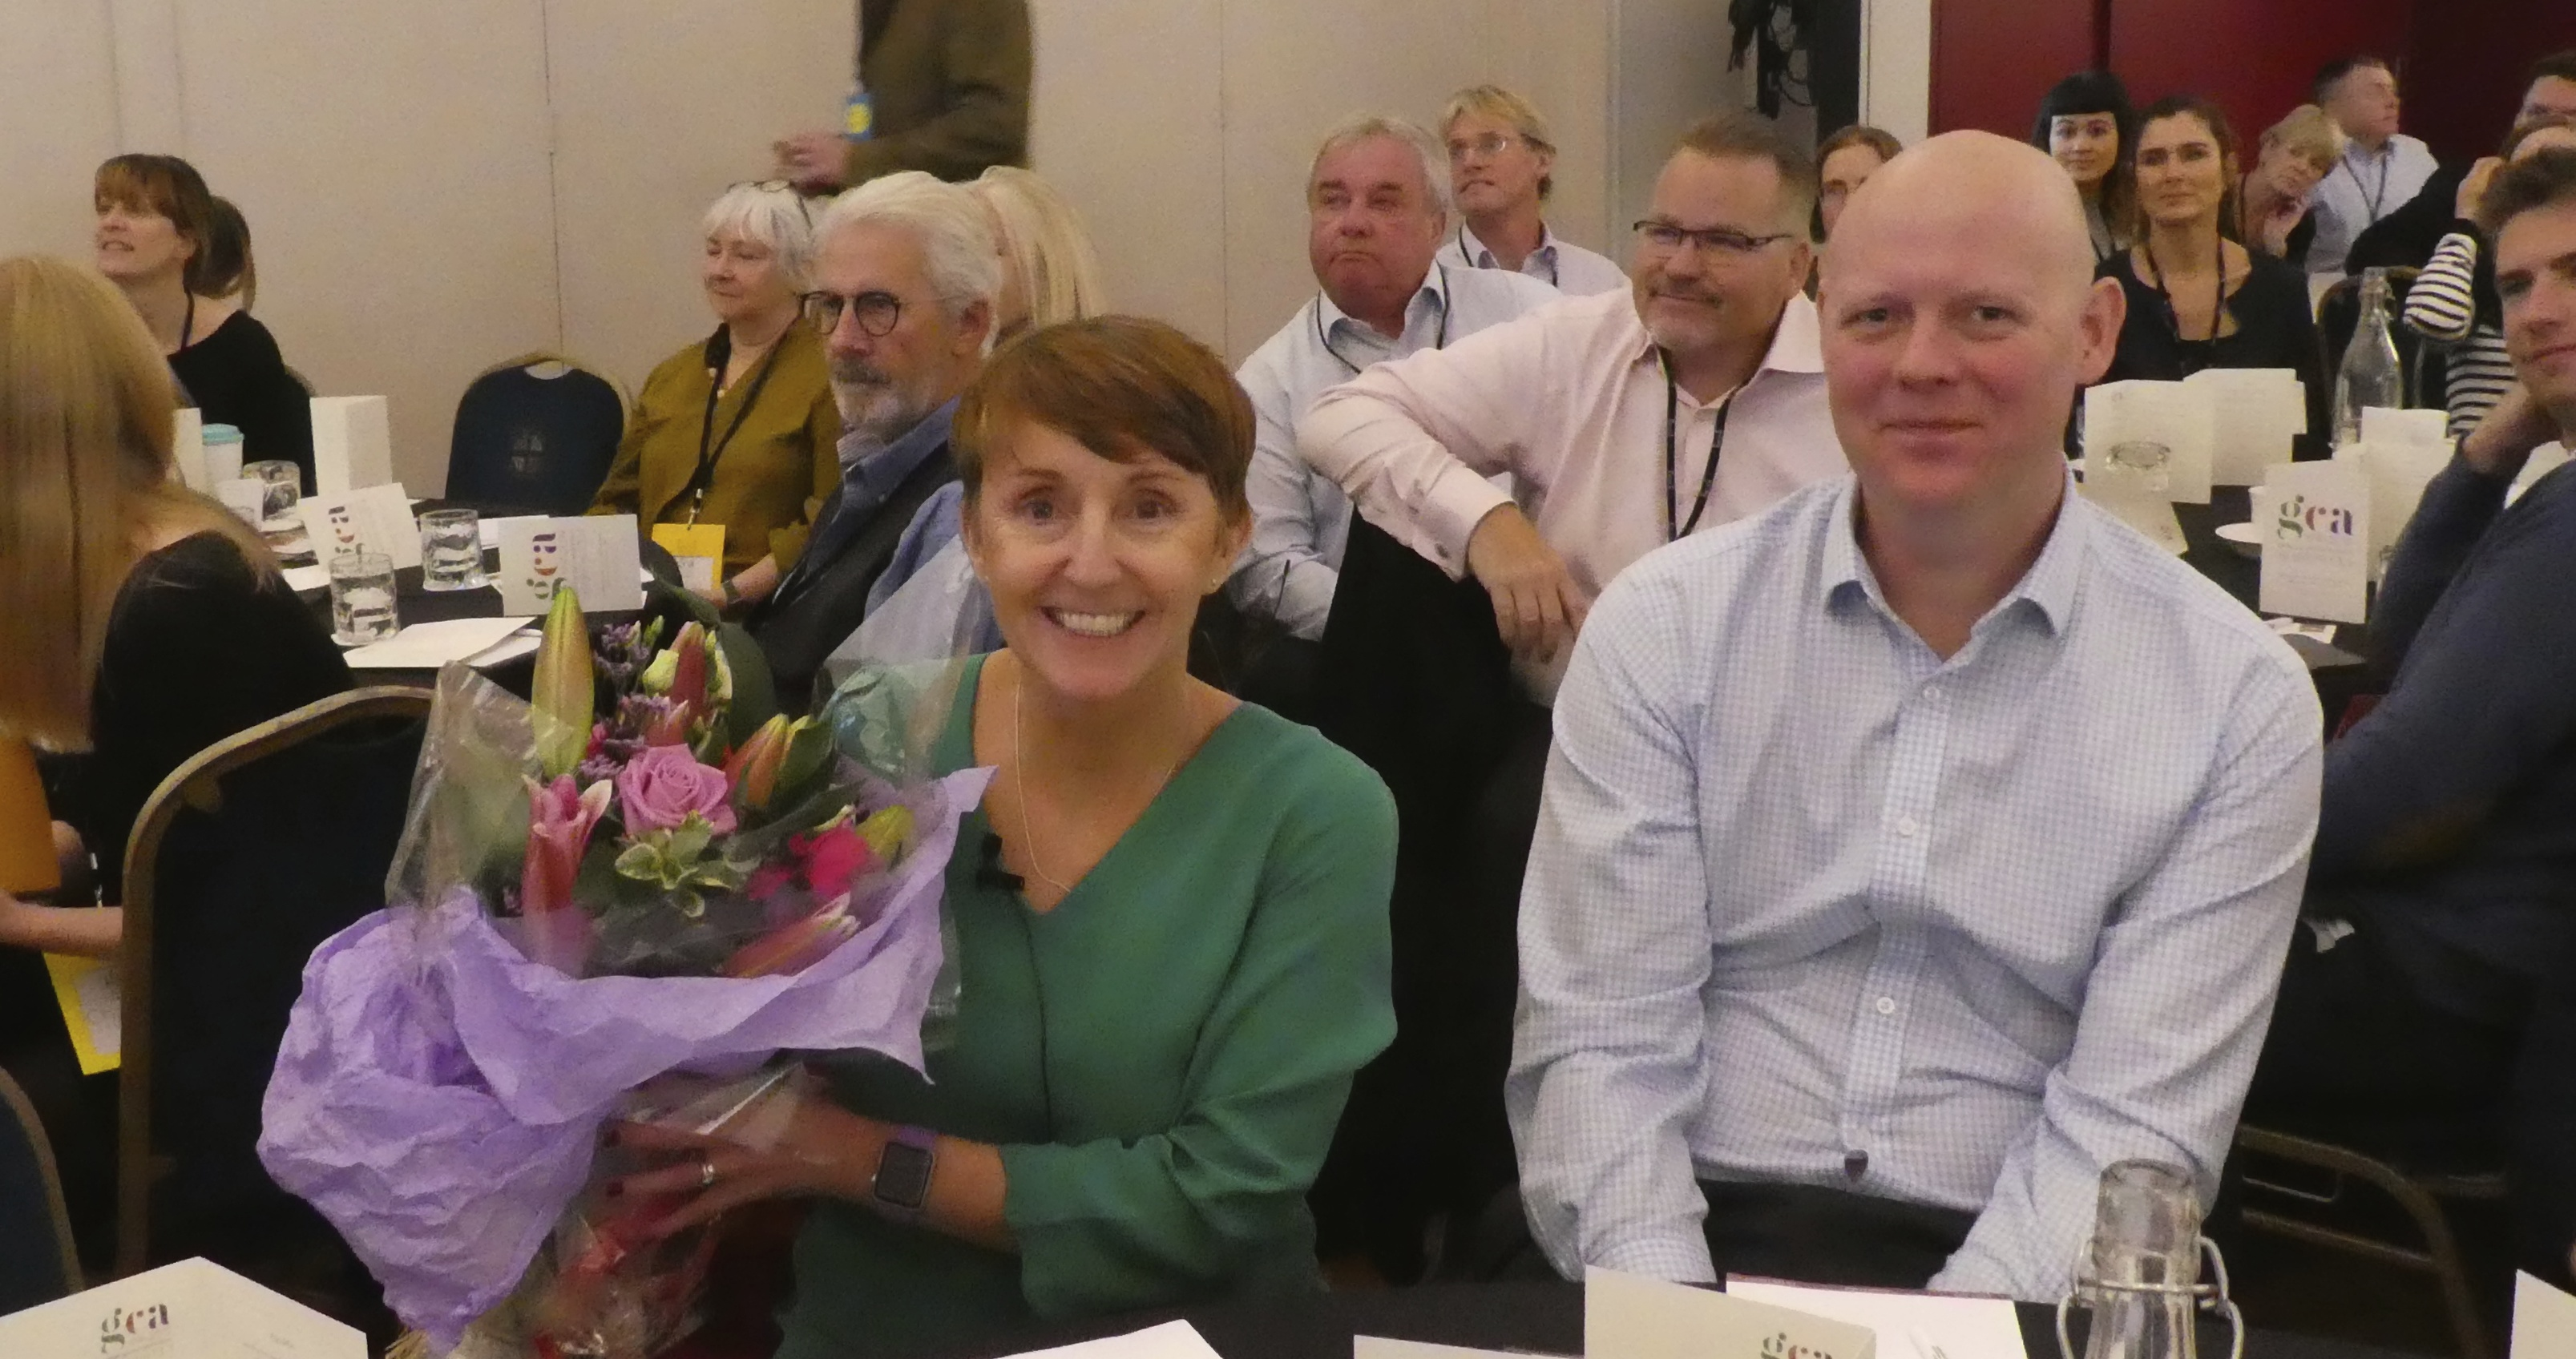 Above: Darren Cave (right) with co-director Ceri Stirland at the recent GCA AGM and Conference at which she was presented with a bouquet in recognition of her work at president. Darren has now joined the GCA Council.